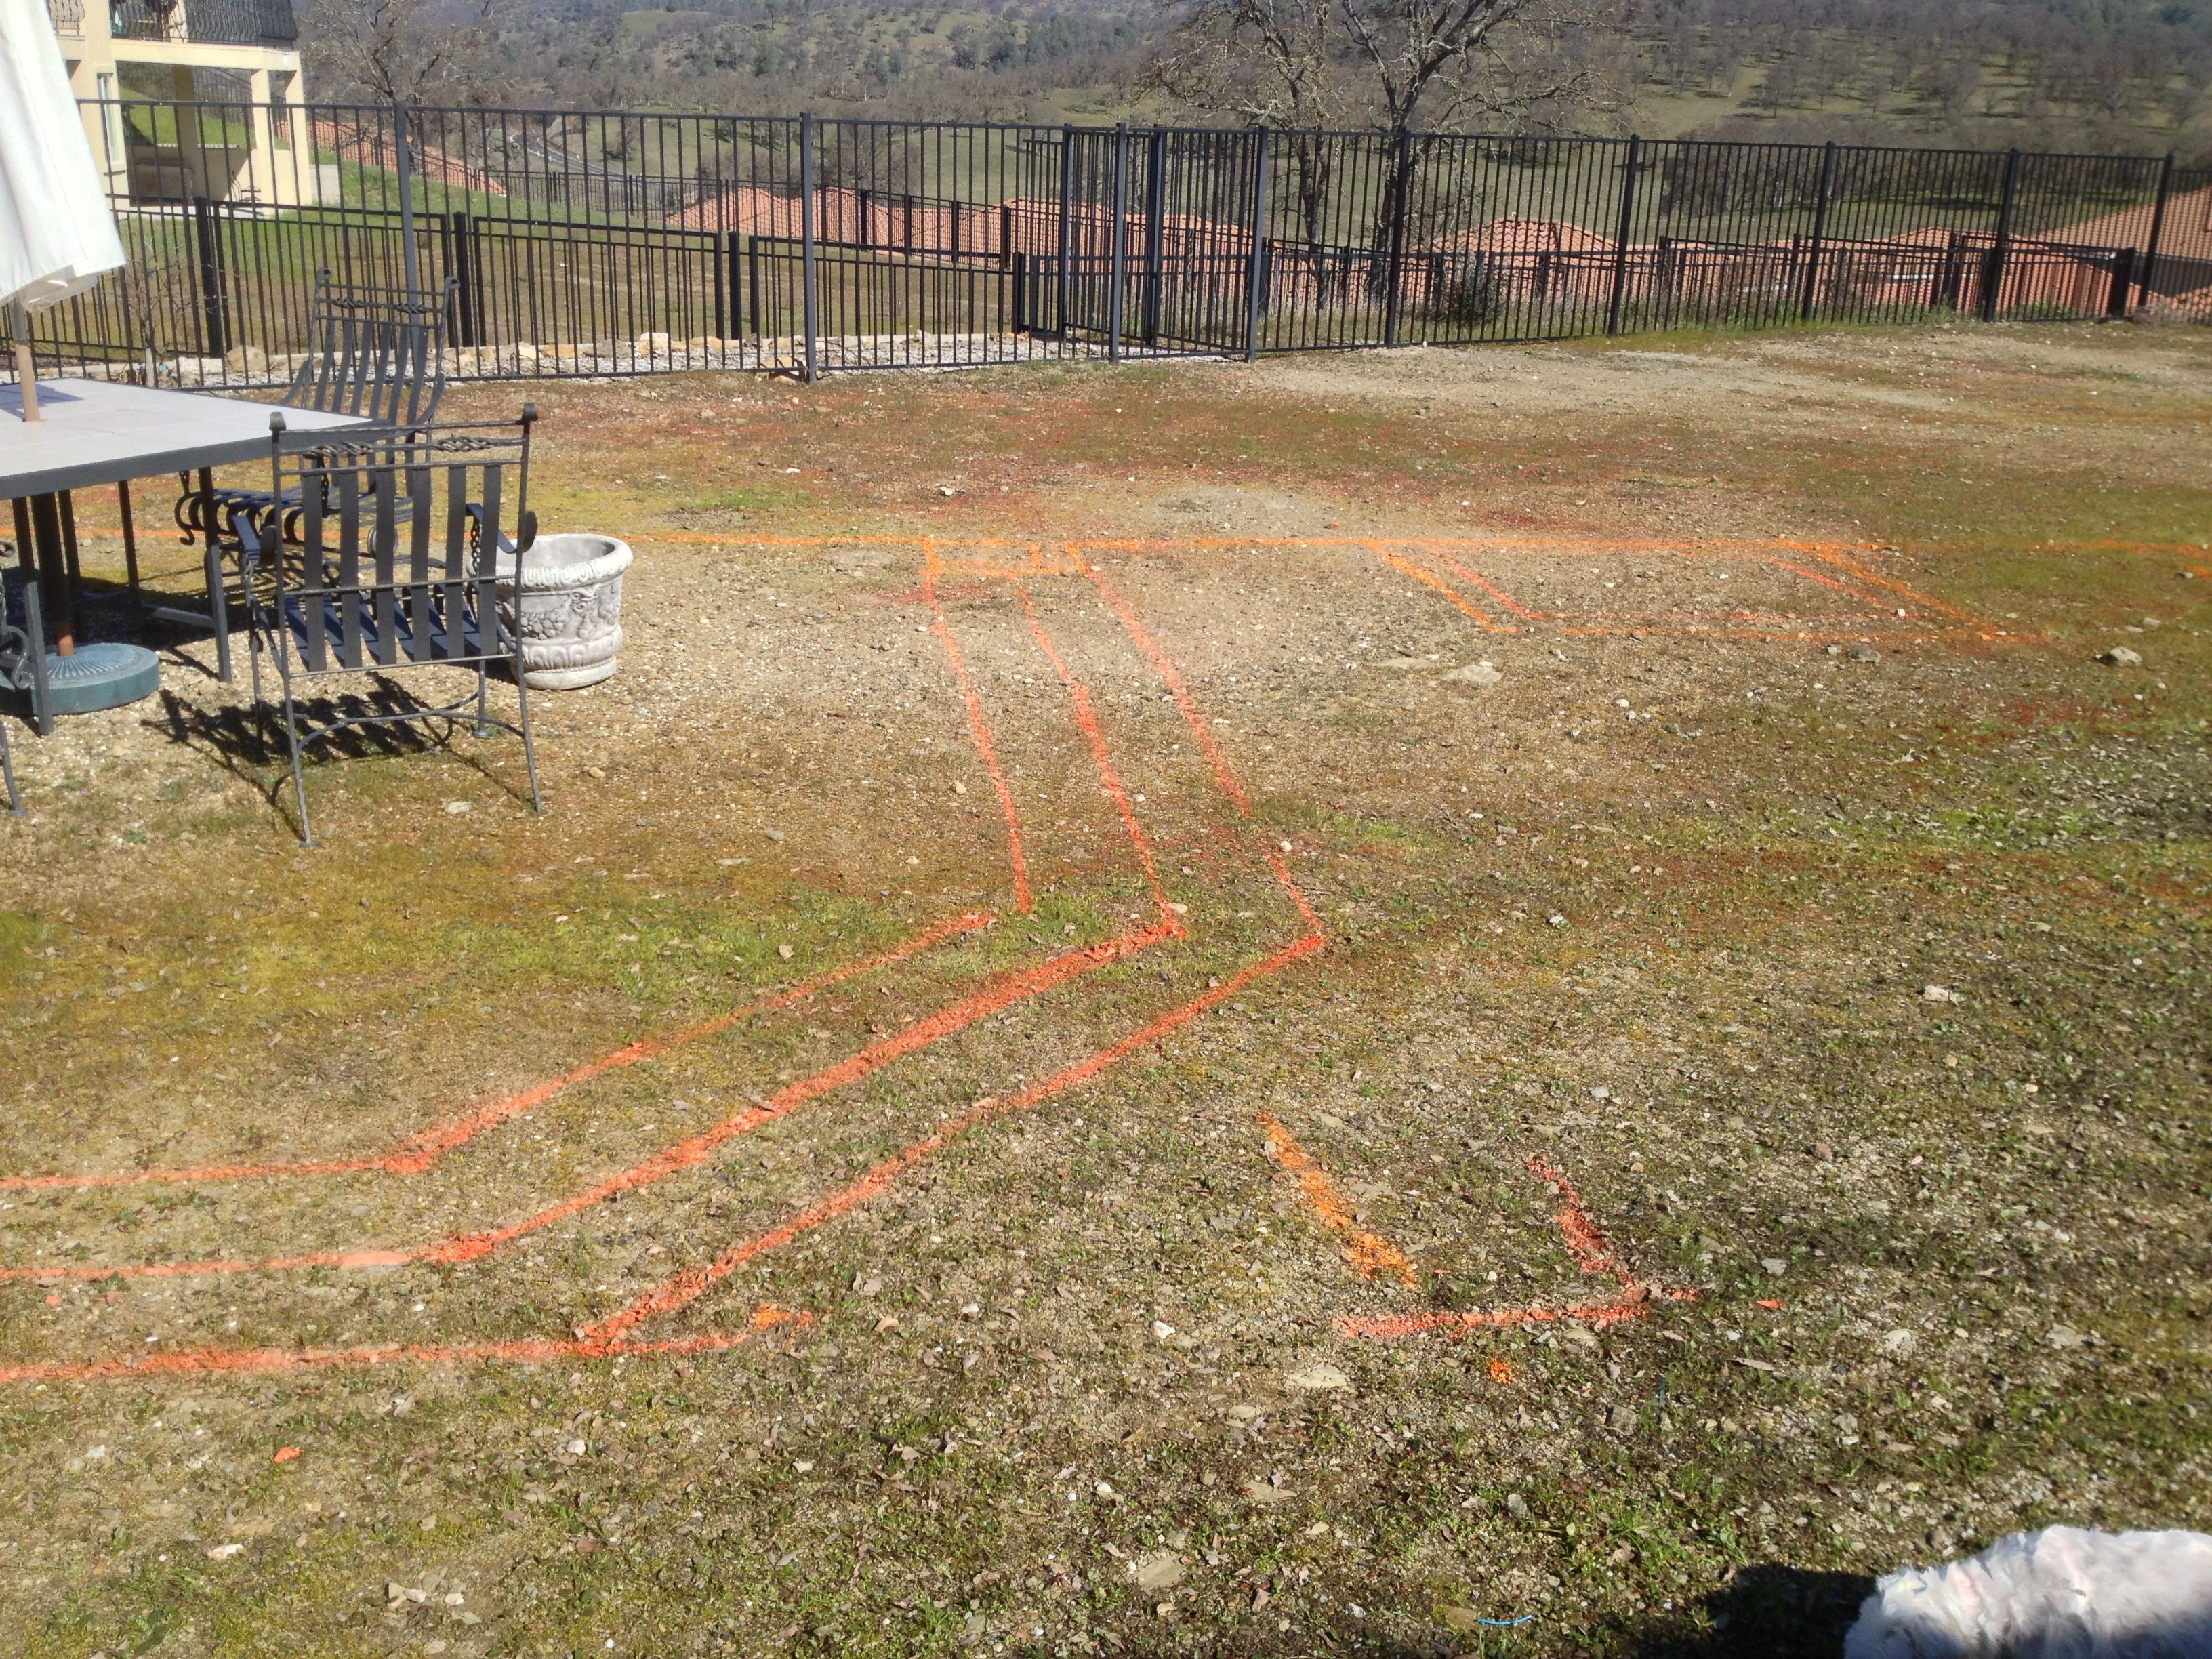 layout of design of the raised deck with spray paint on dirt